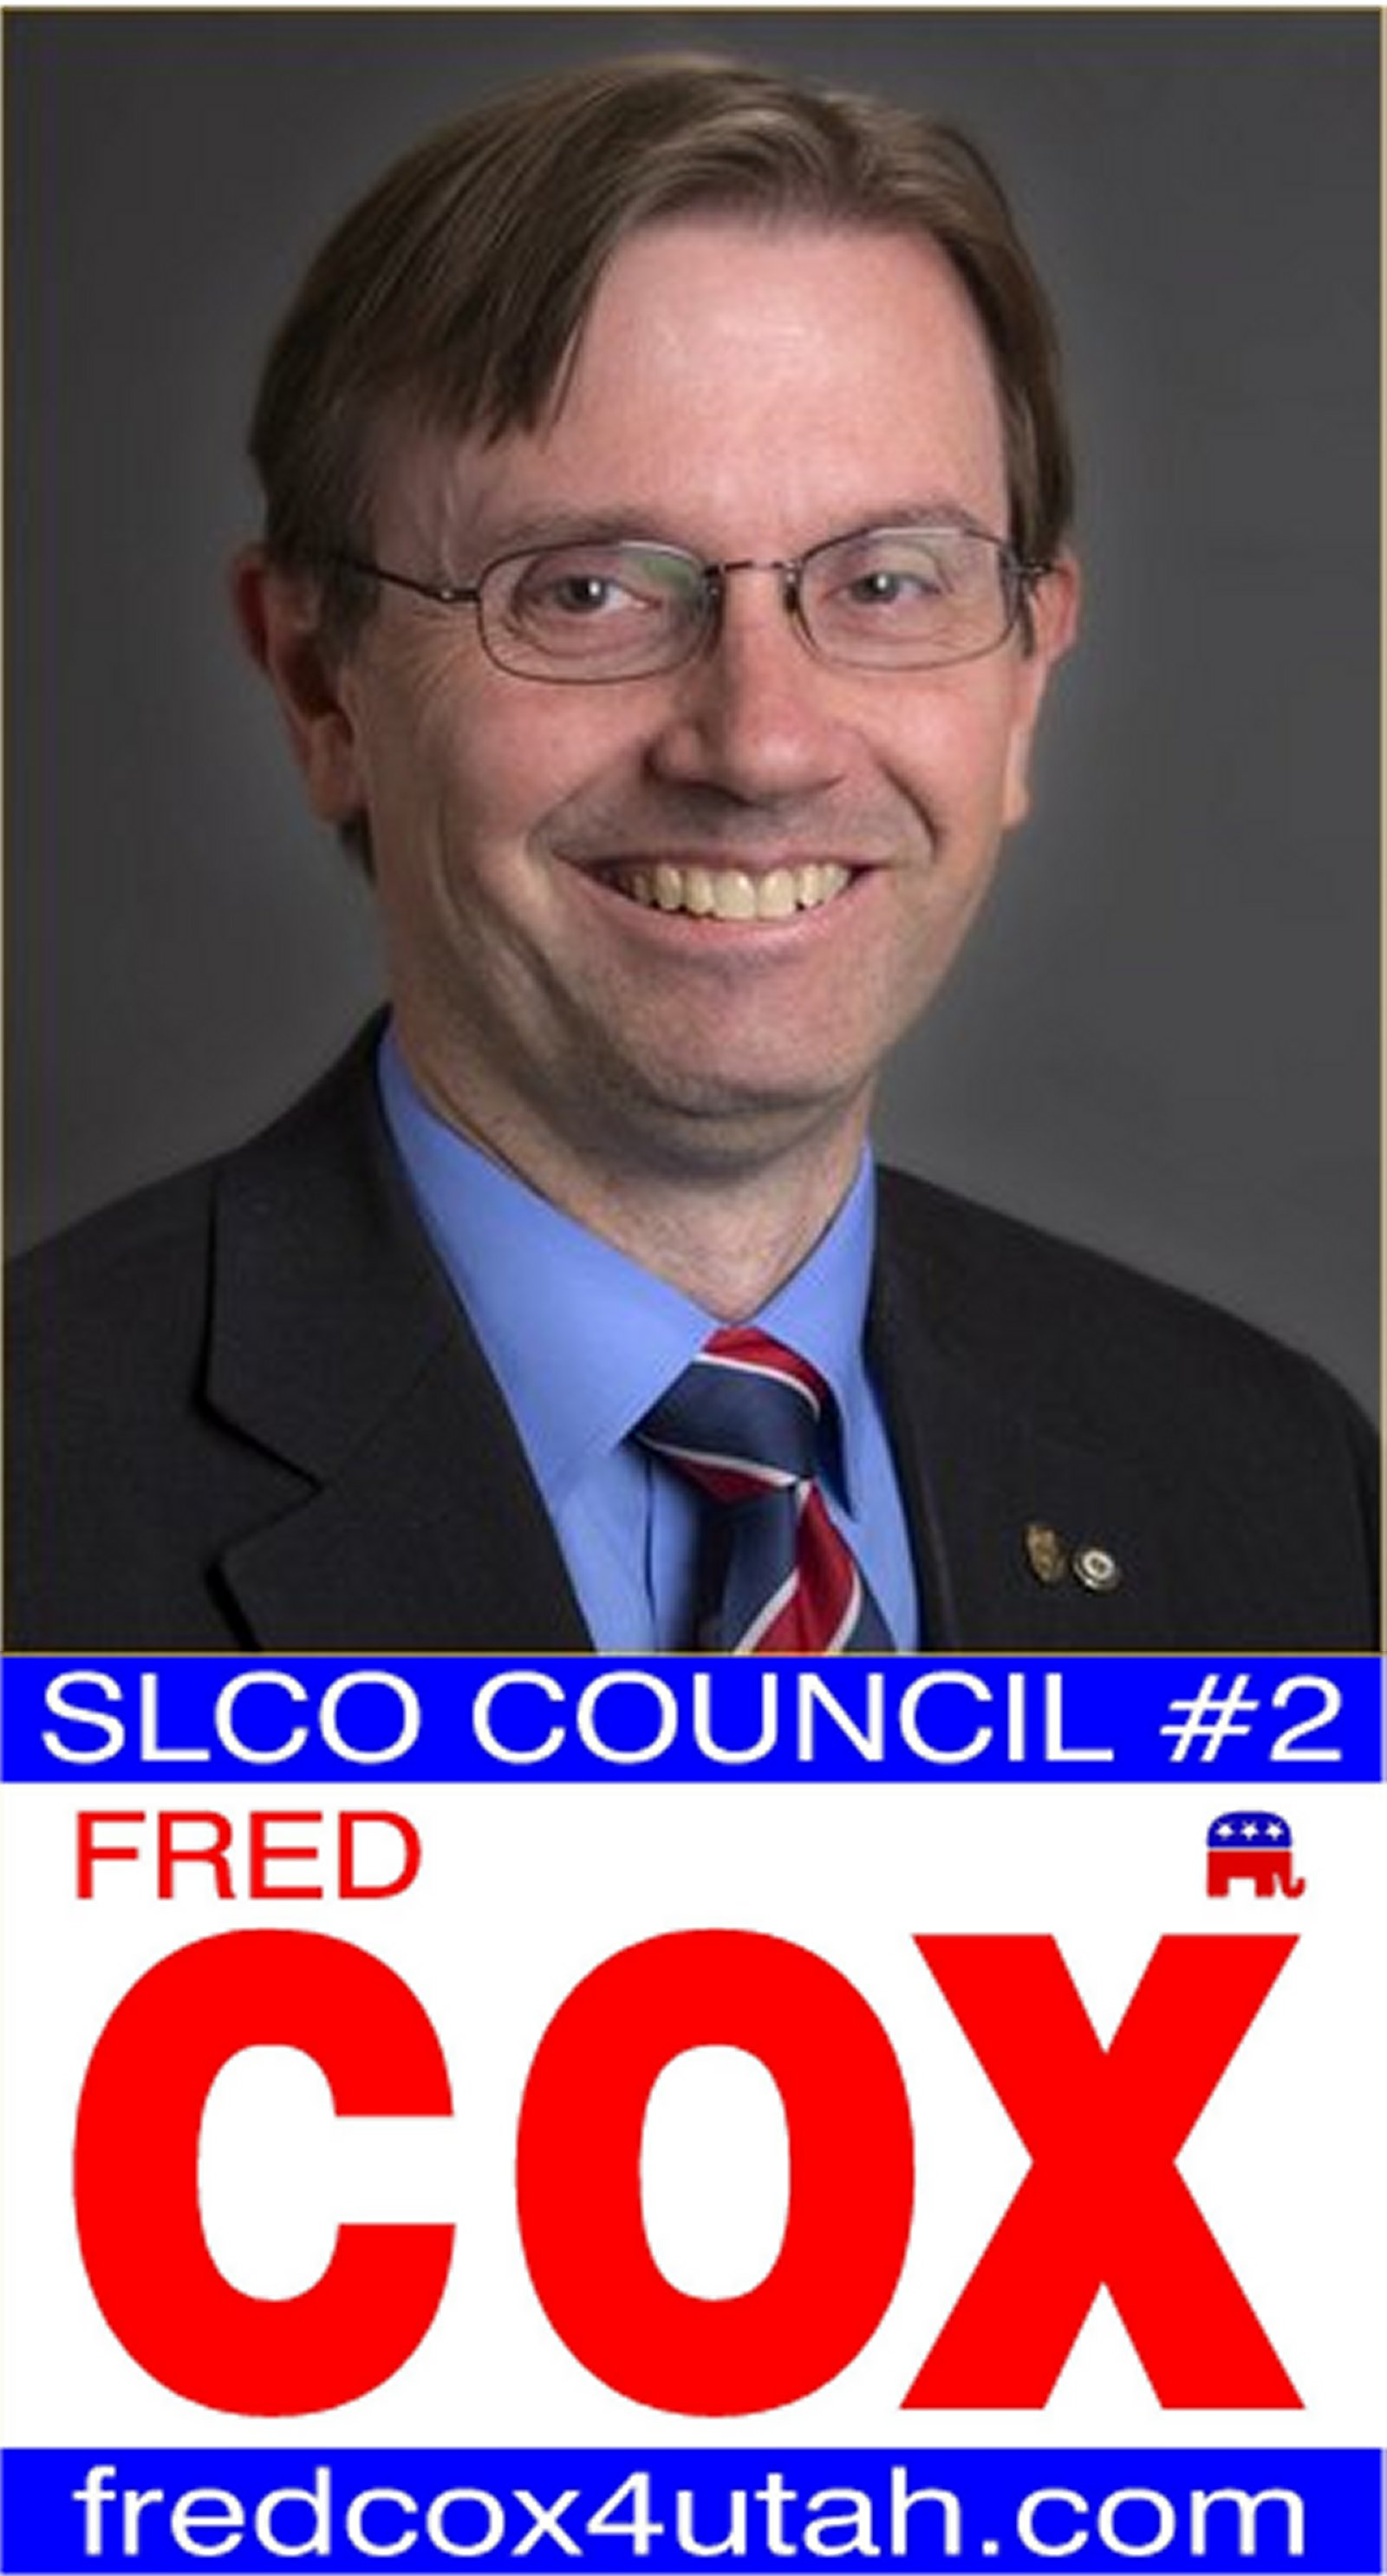 Photo of Fred C. Cox       and Sign for SLCO Council 2